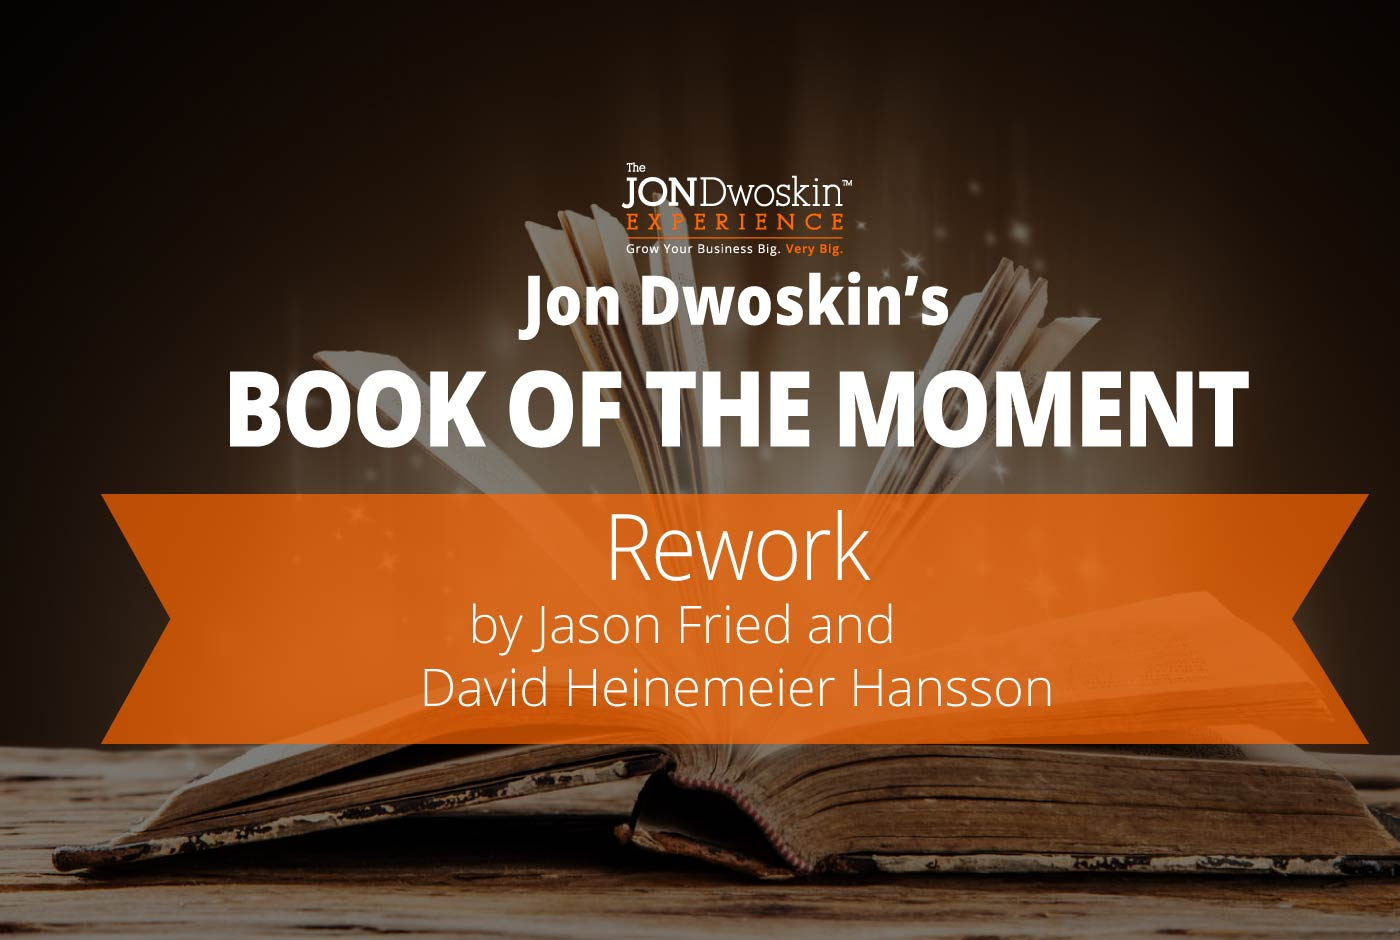 Jon Dwoskin's Book of the Momen: Rework